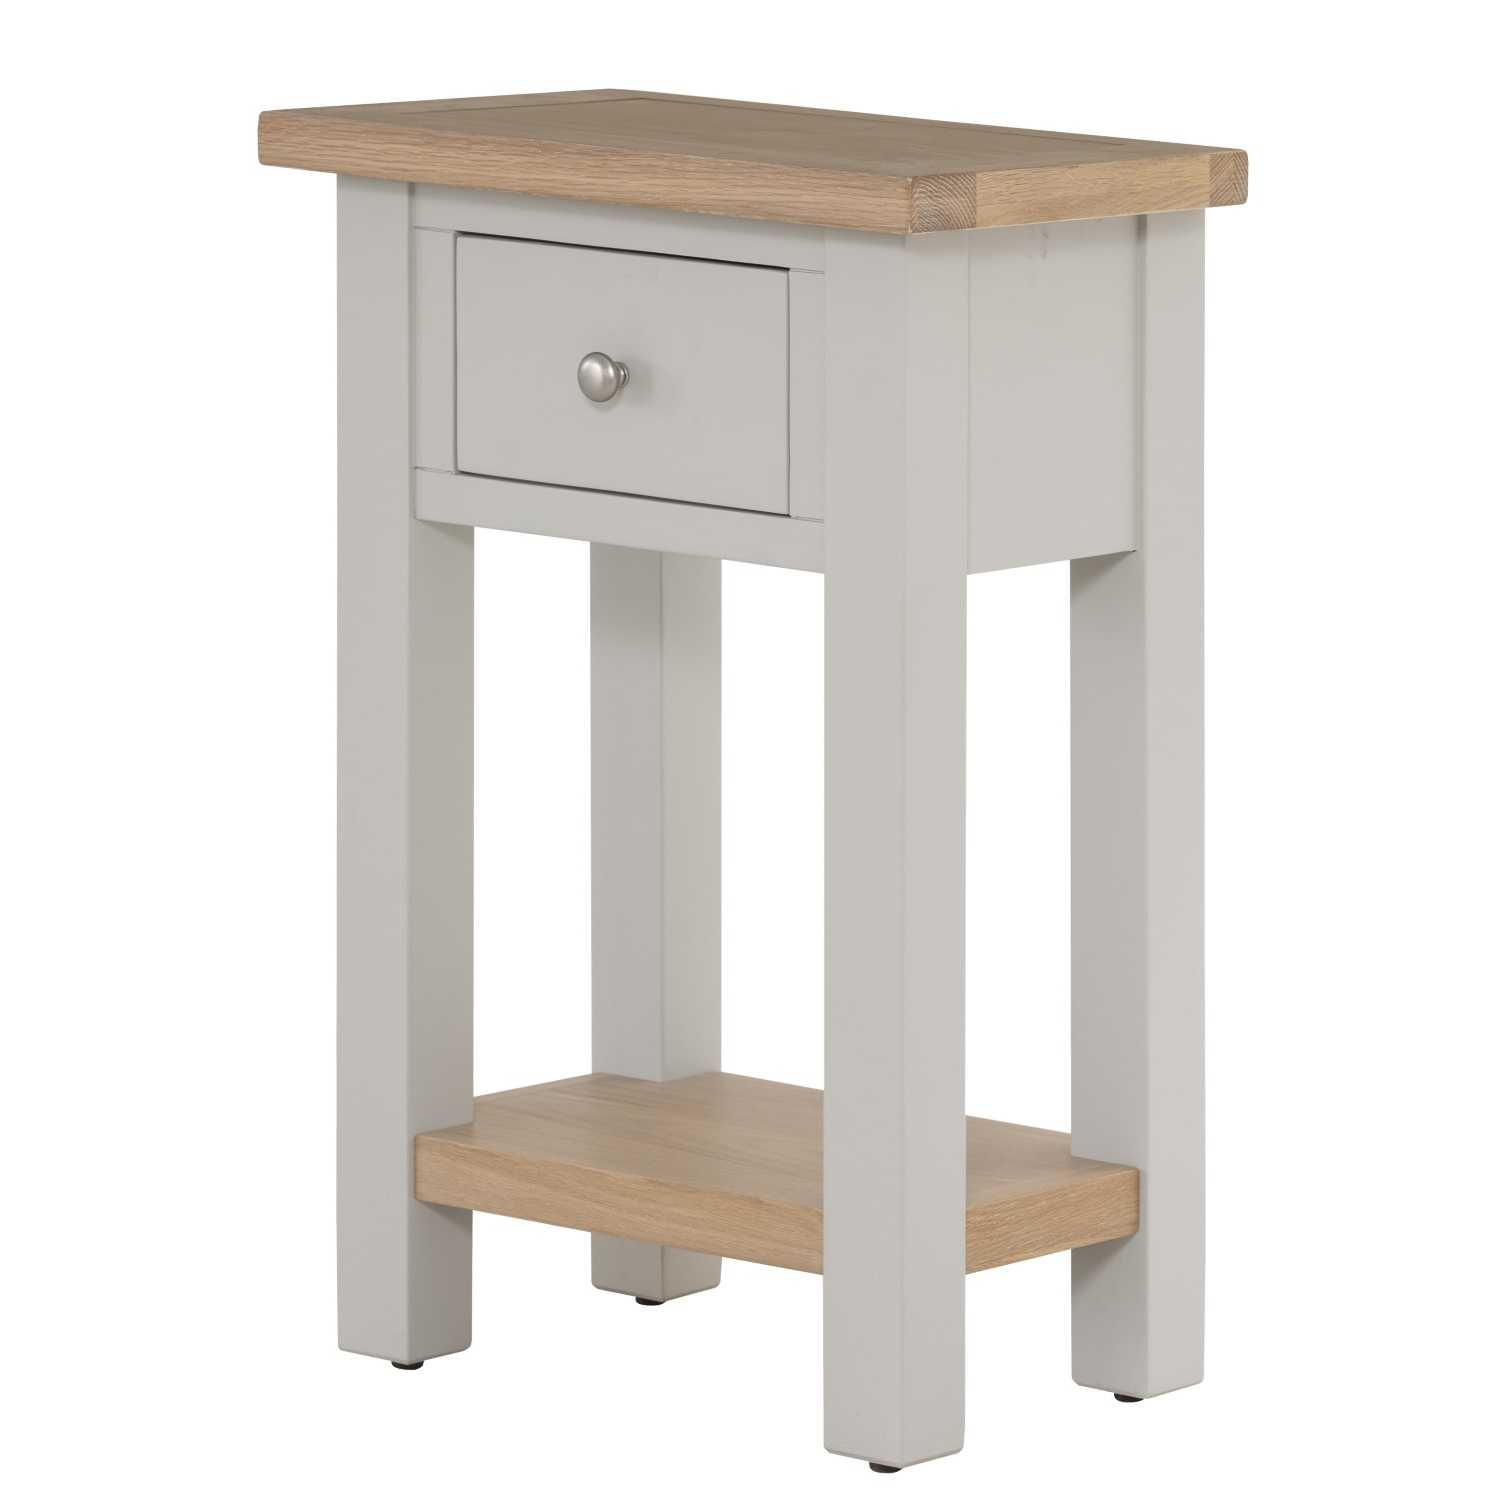 Vancouver Chalked Oak Light Grey Painted 1 Drawer Telephone Hall Table